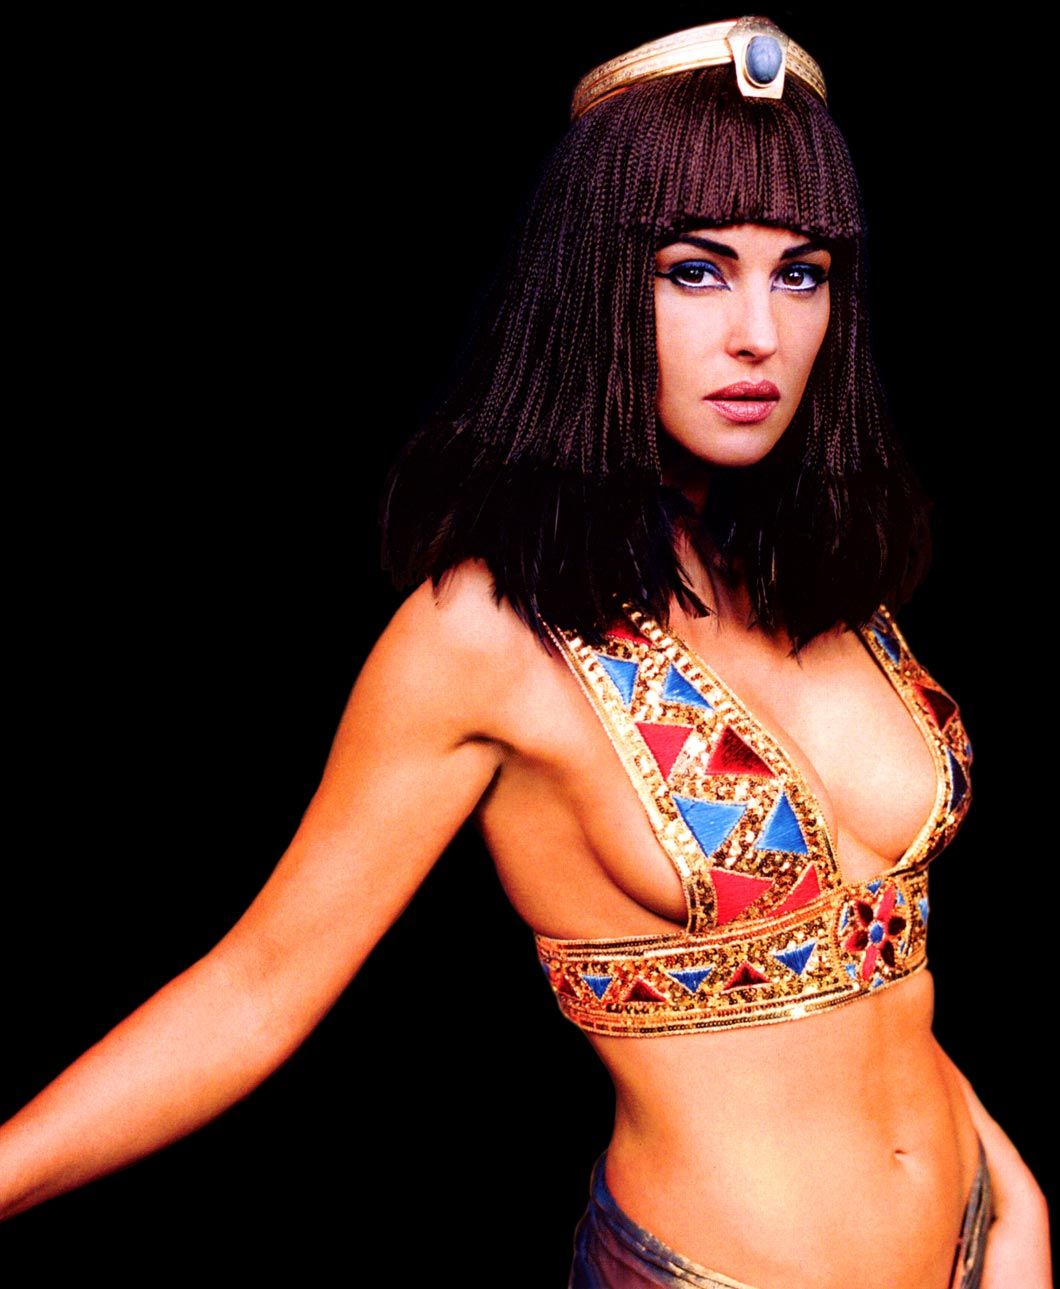 New Cleopatra Movie Bellucci As Cleopatra Asterix And